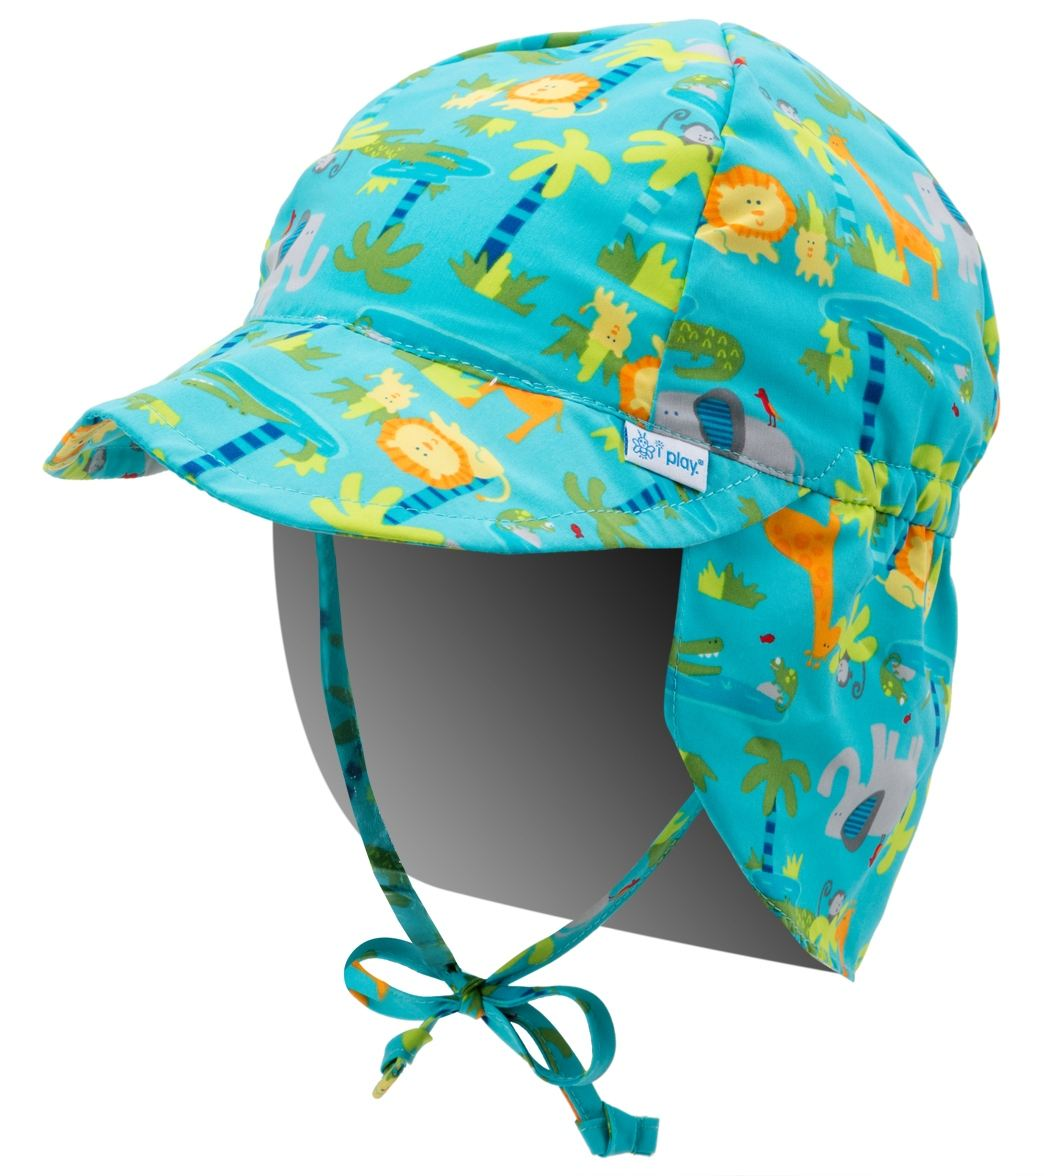 iPlay Boys  Turtle Classics Flap Sun Protection Hat (0mos-4yrs) at  SwimOutlet.com 9e8a7e69157